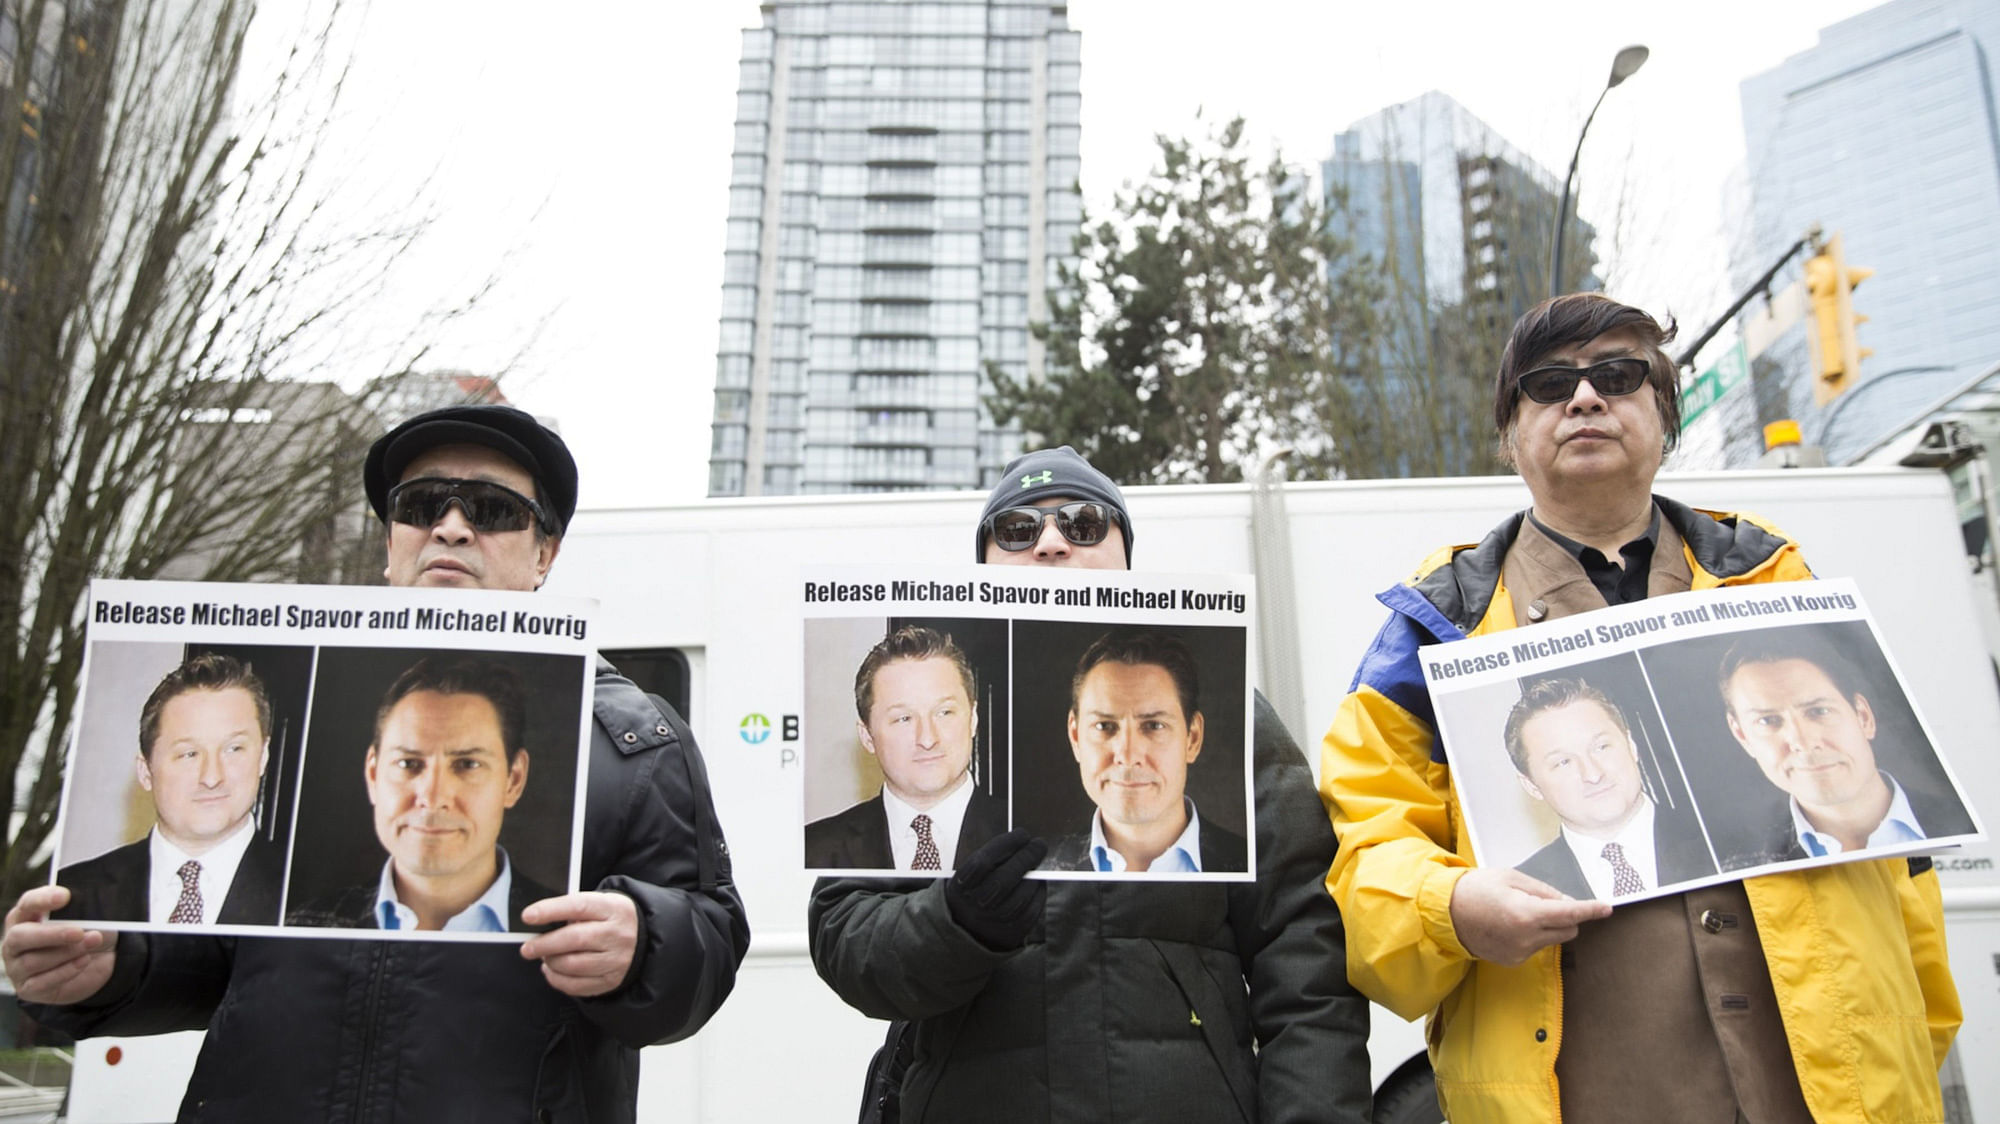 Protesters hold photos of Canadians Michael Spavor and Michael Kovrig, who are being detained by China, outside British Columbia Supreme Court, in Vancouver